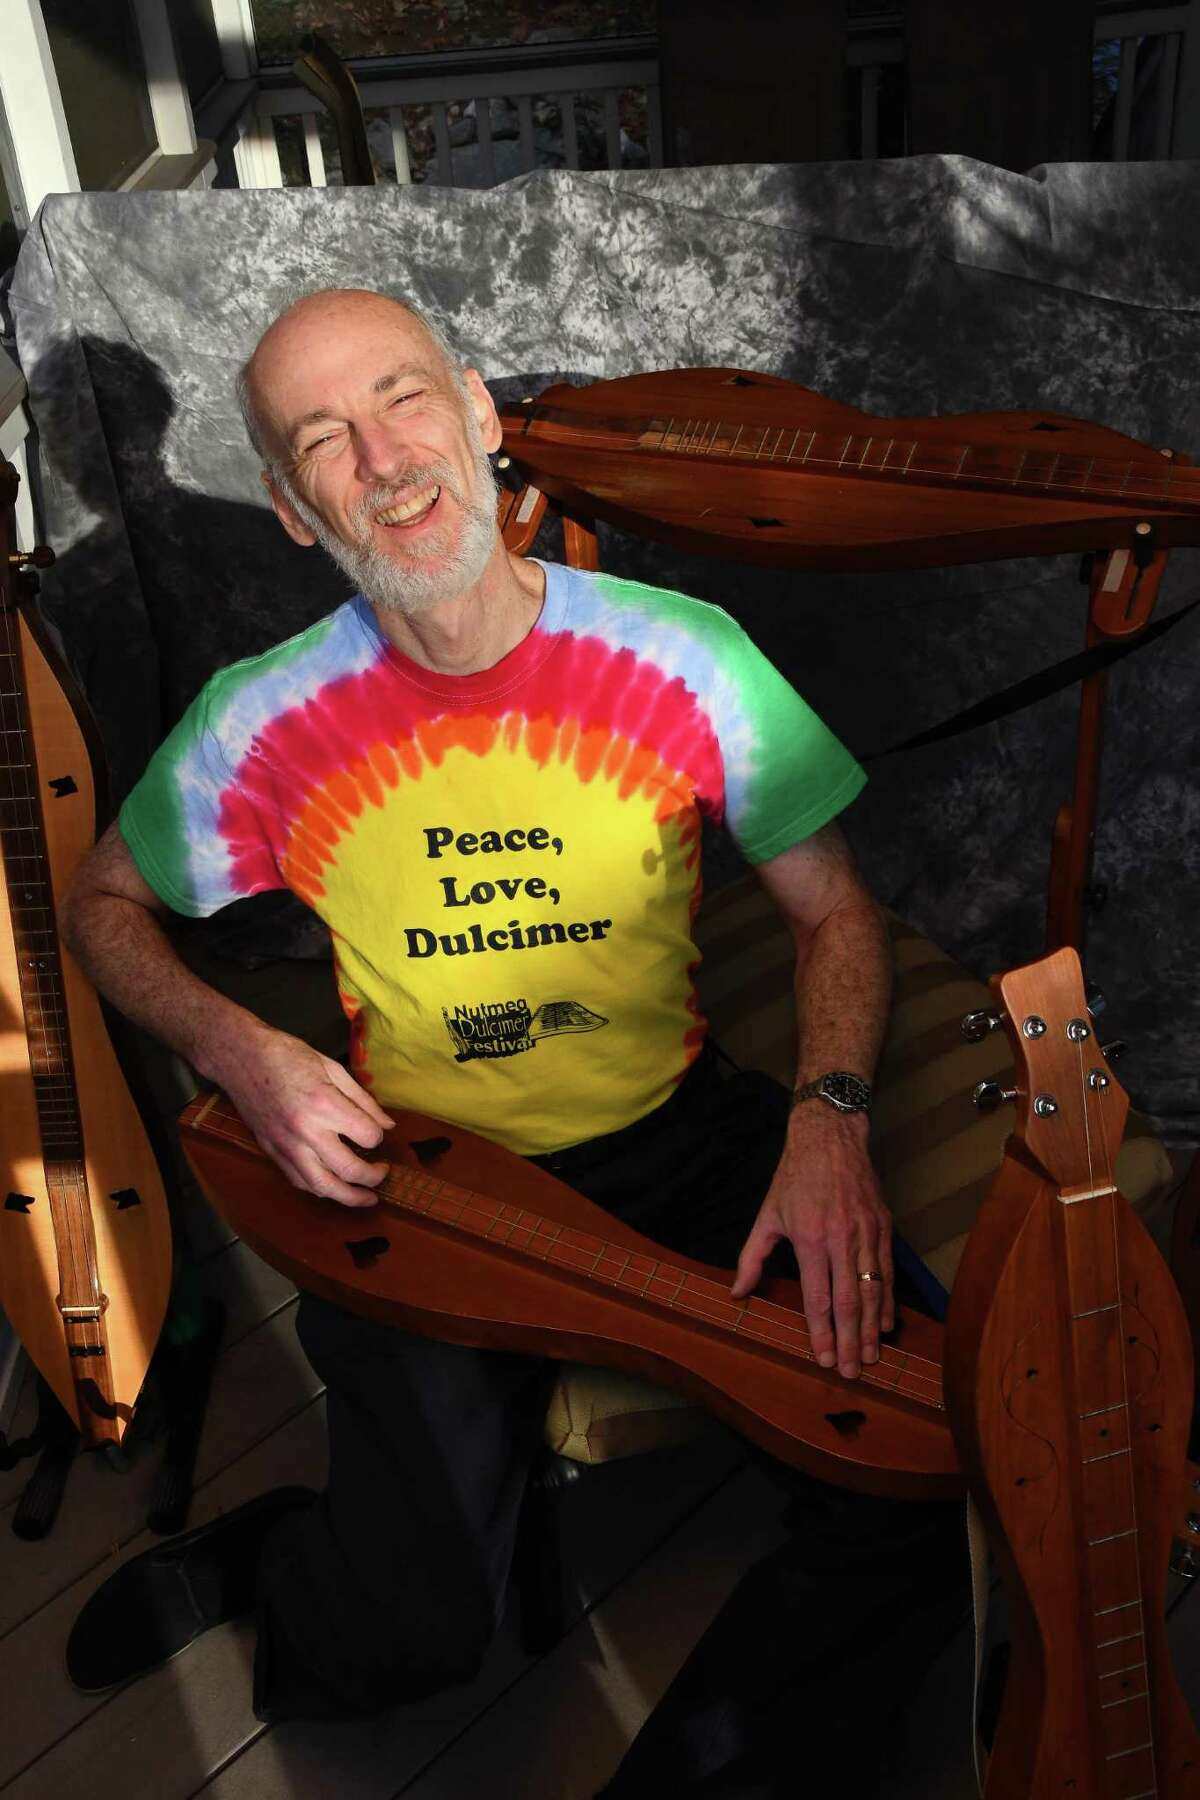 Wearing one of his favorite shirts, Sam Edelston sings and plays one of his many dulcimers.